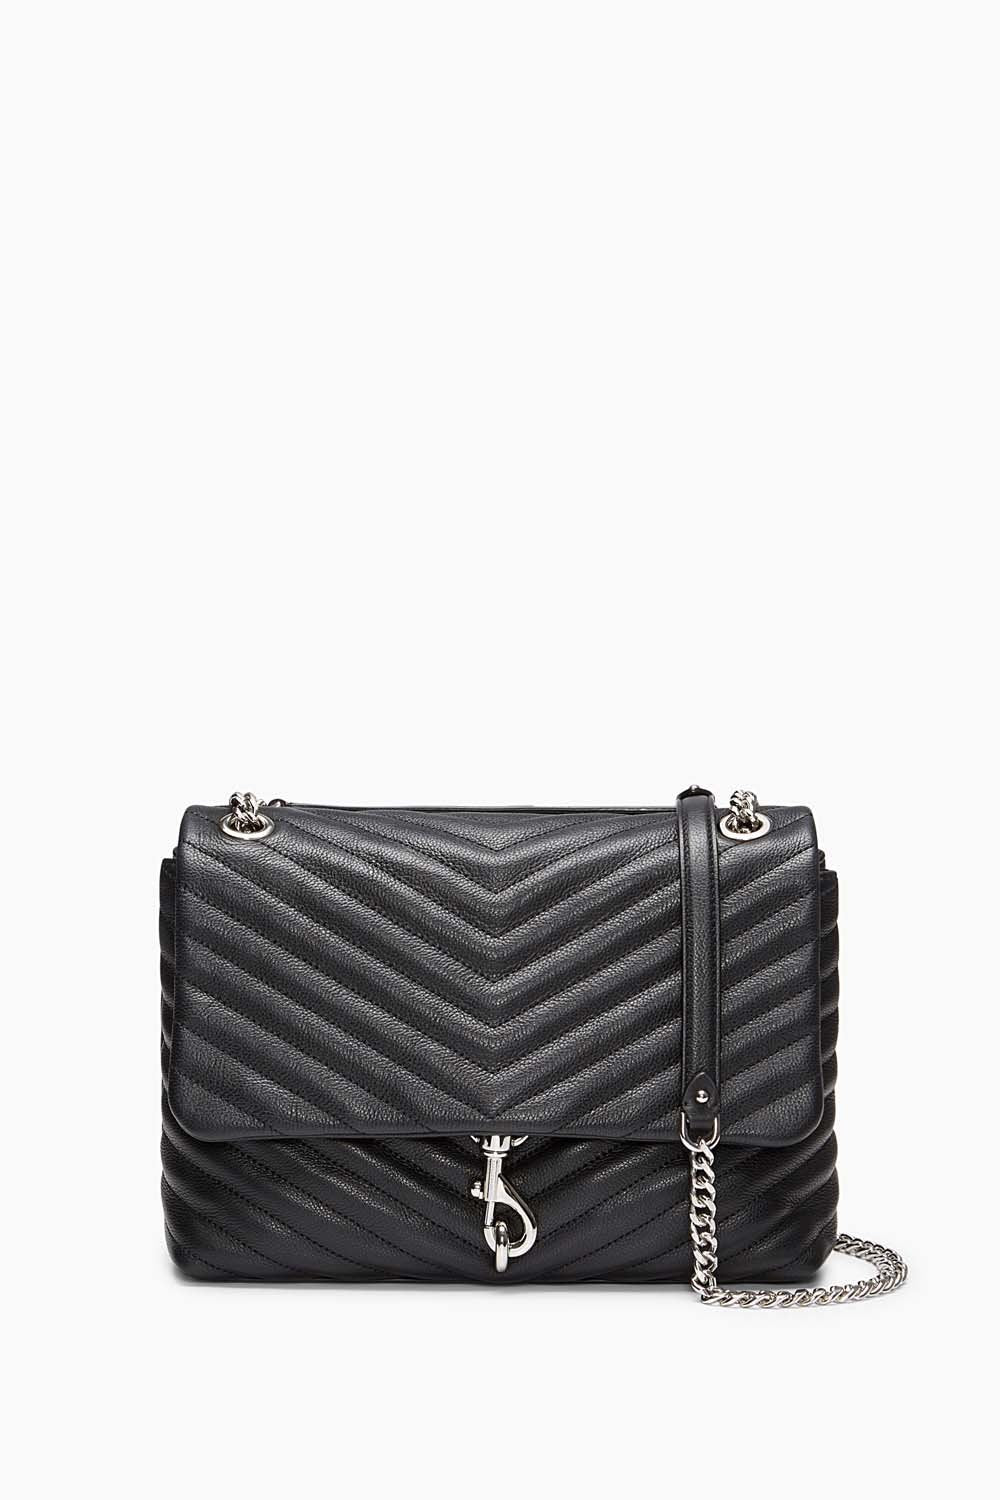 REBECCA MINKOFF - EDIE CROSSBODY IN BLACK